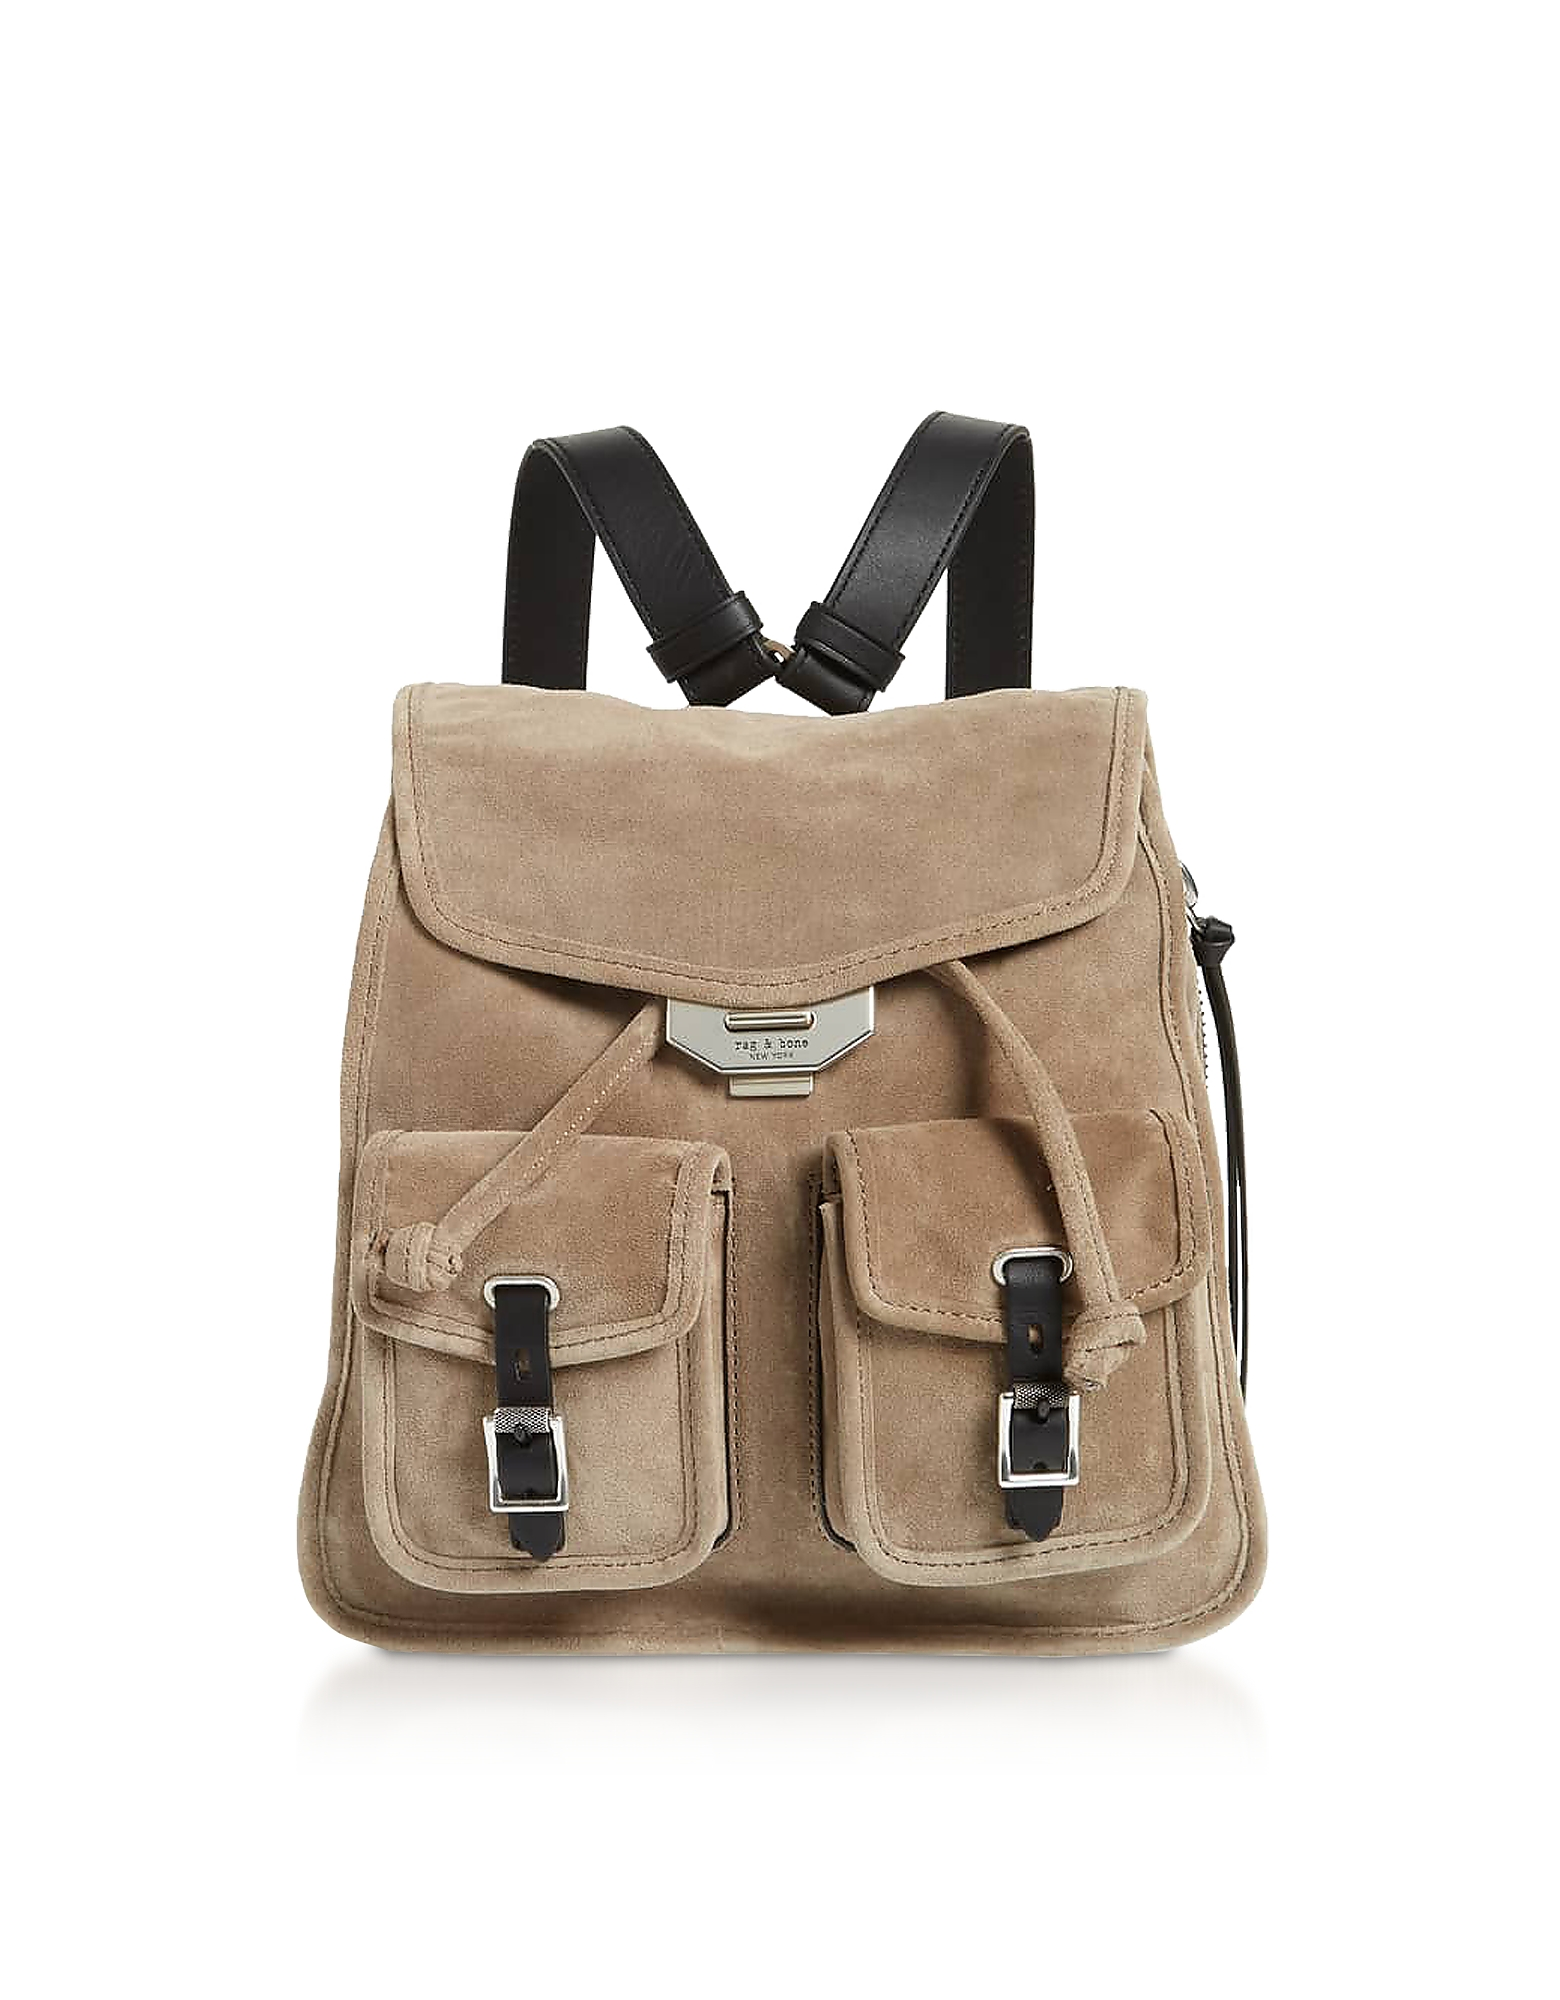 Warm Grey Suede Field Small Backpack